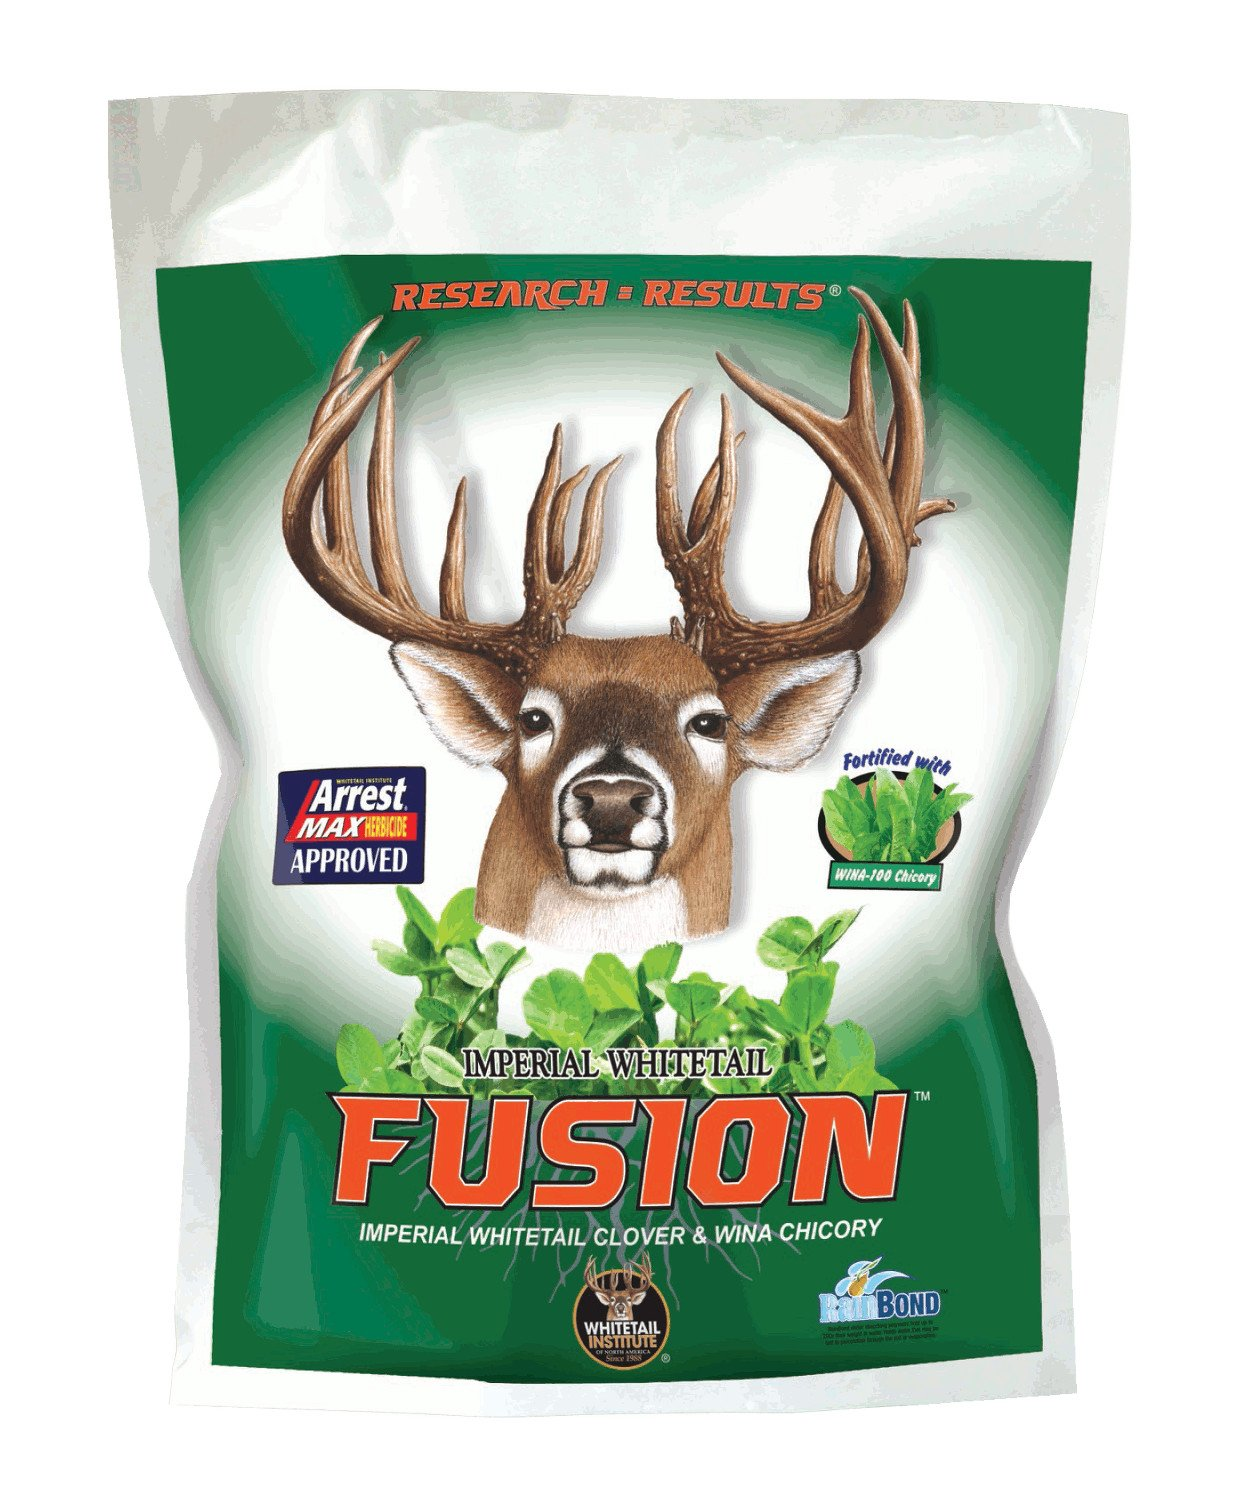 Whitetail Institute Fusion (Perennial) Clover & Chicory Food Plot Seed (Spring and Fall Planting), 9.25-Pound by Whitetail Institute